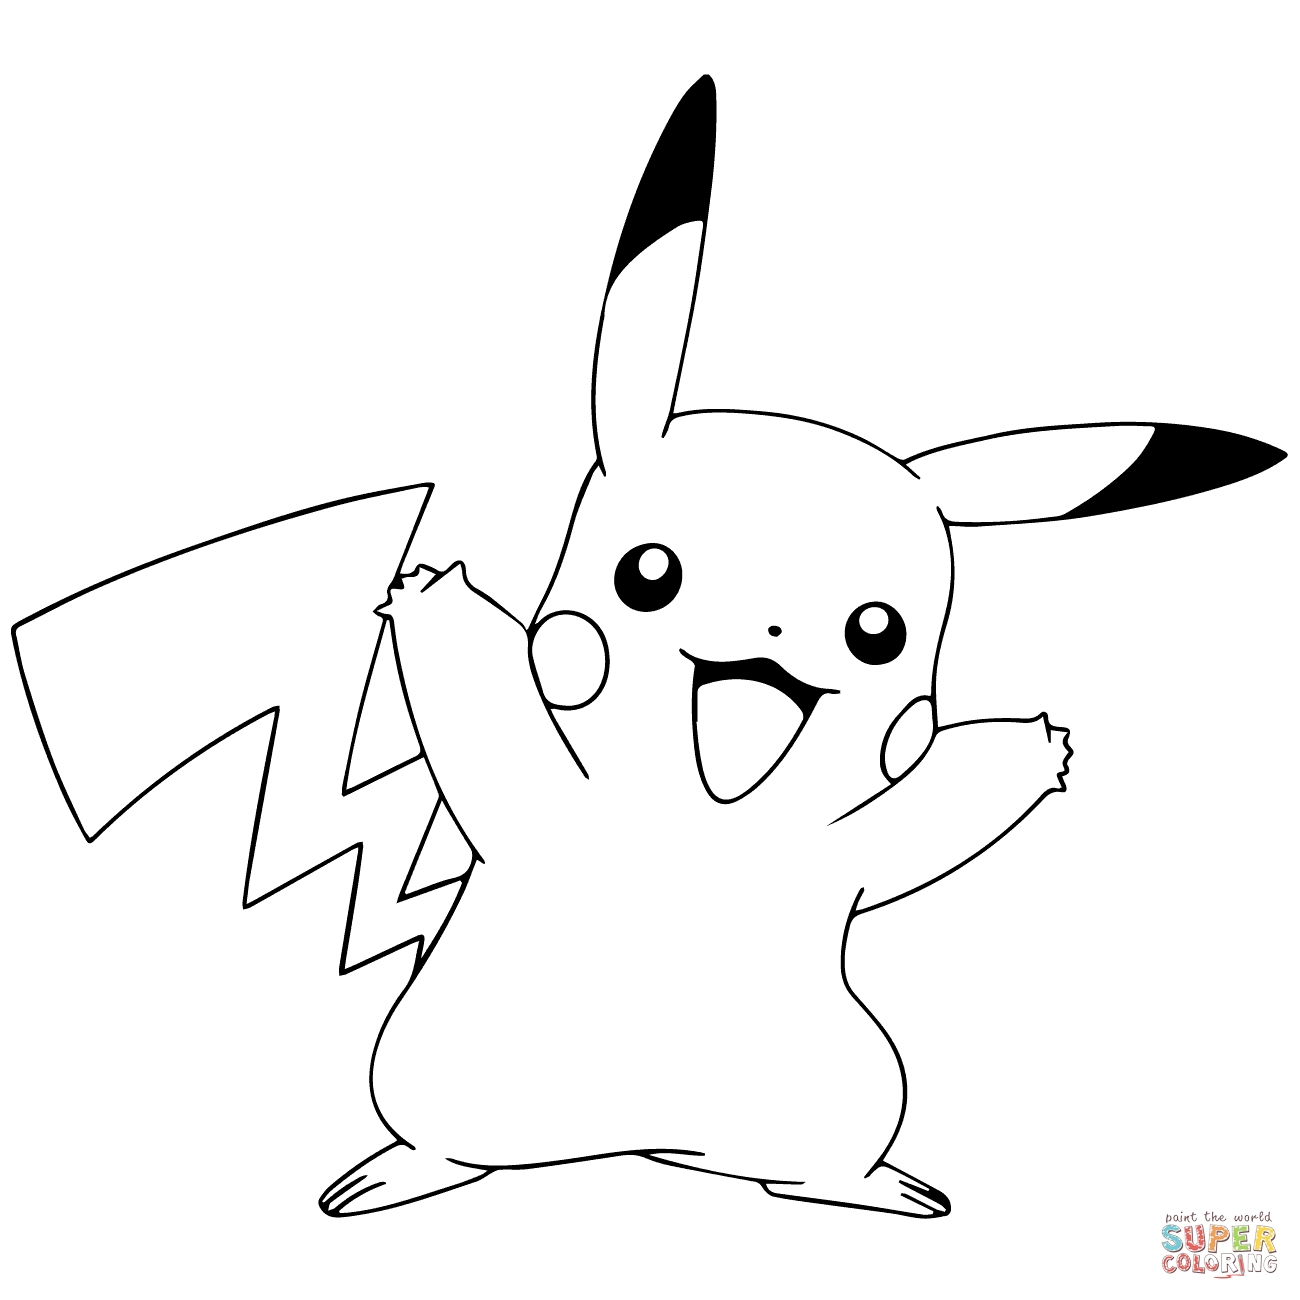 pokemon go coloring pages - pokemon go pikachu celebrating